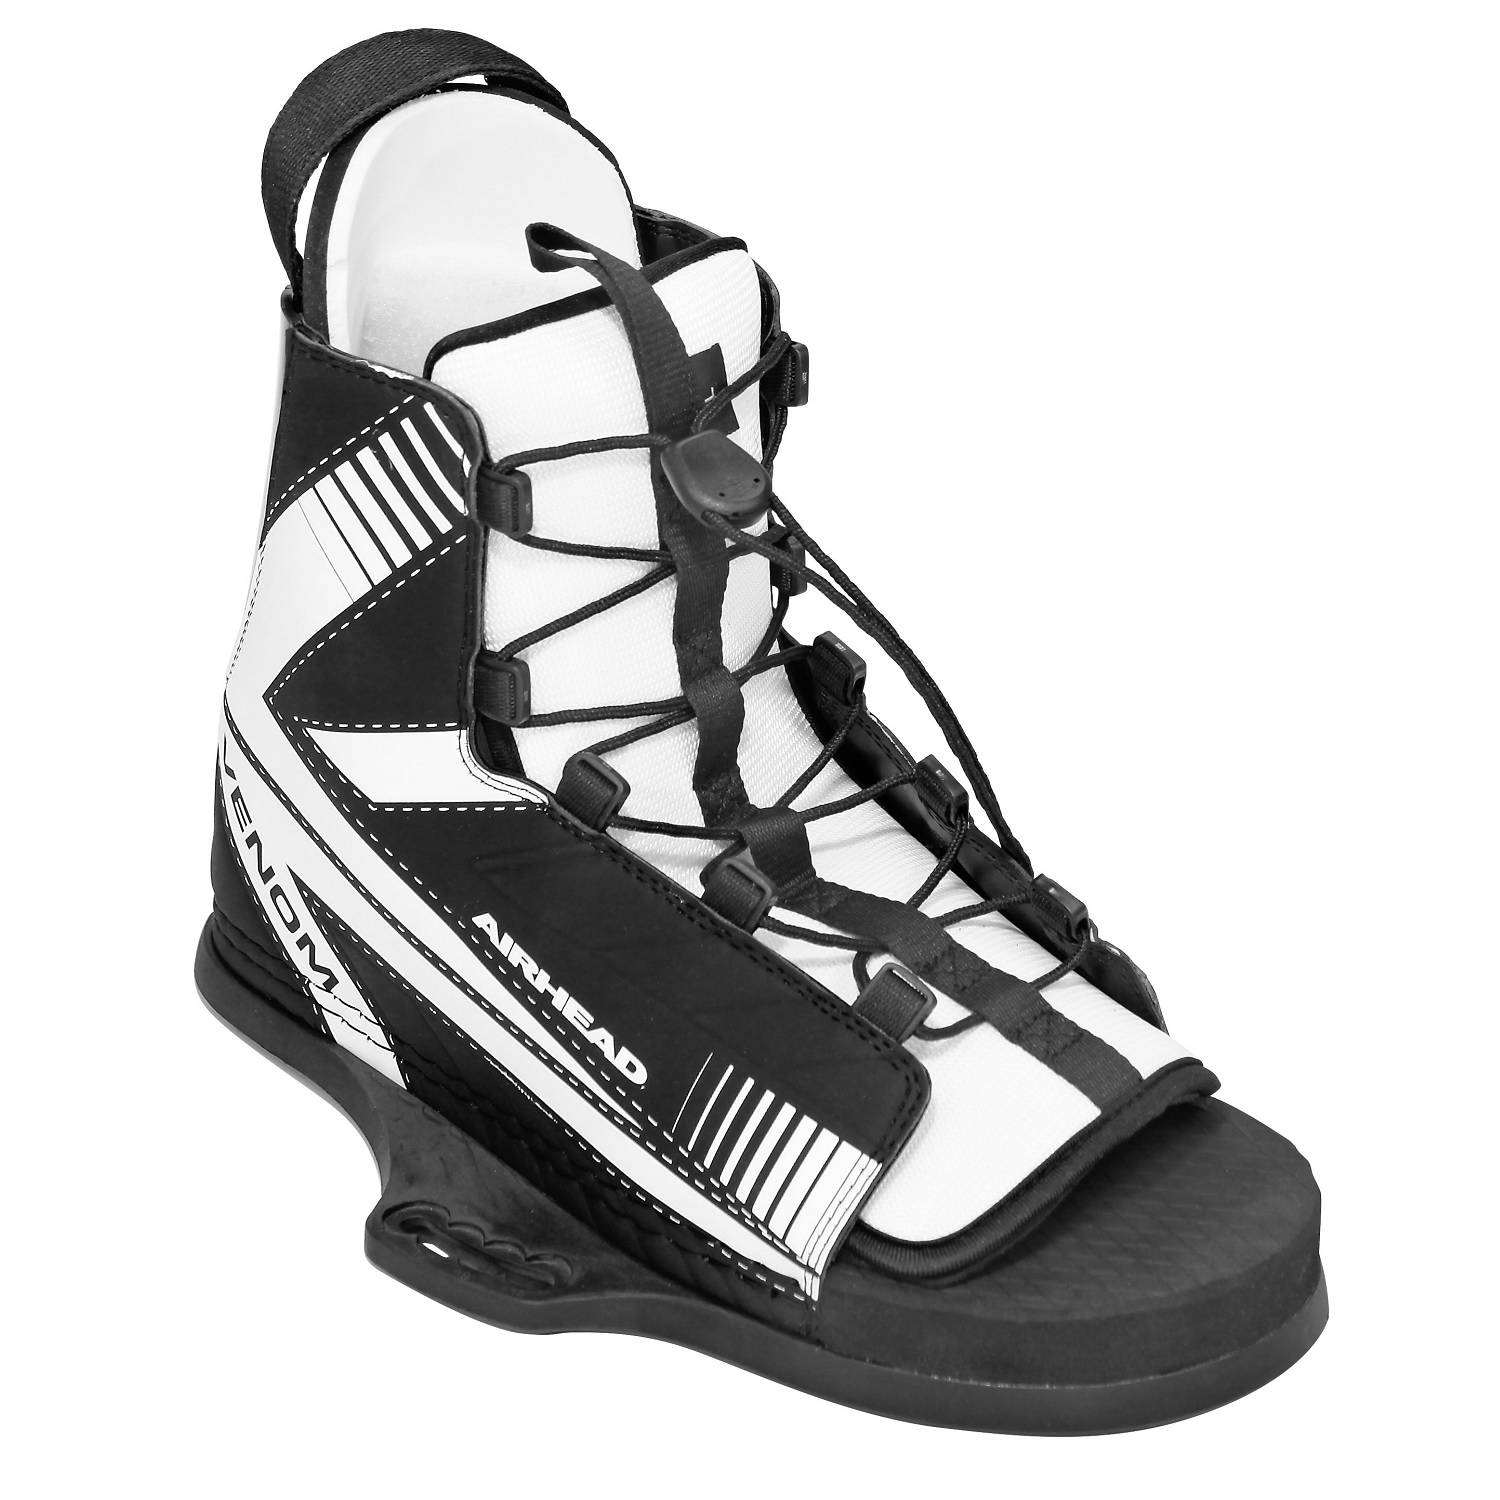 VENOM Wakeboard Binding, (US 4-8) by AIRHEAD SPORTS GROUP